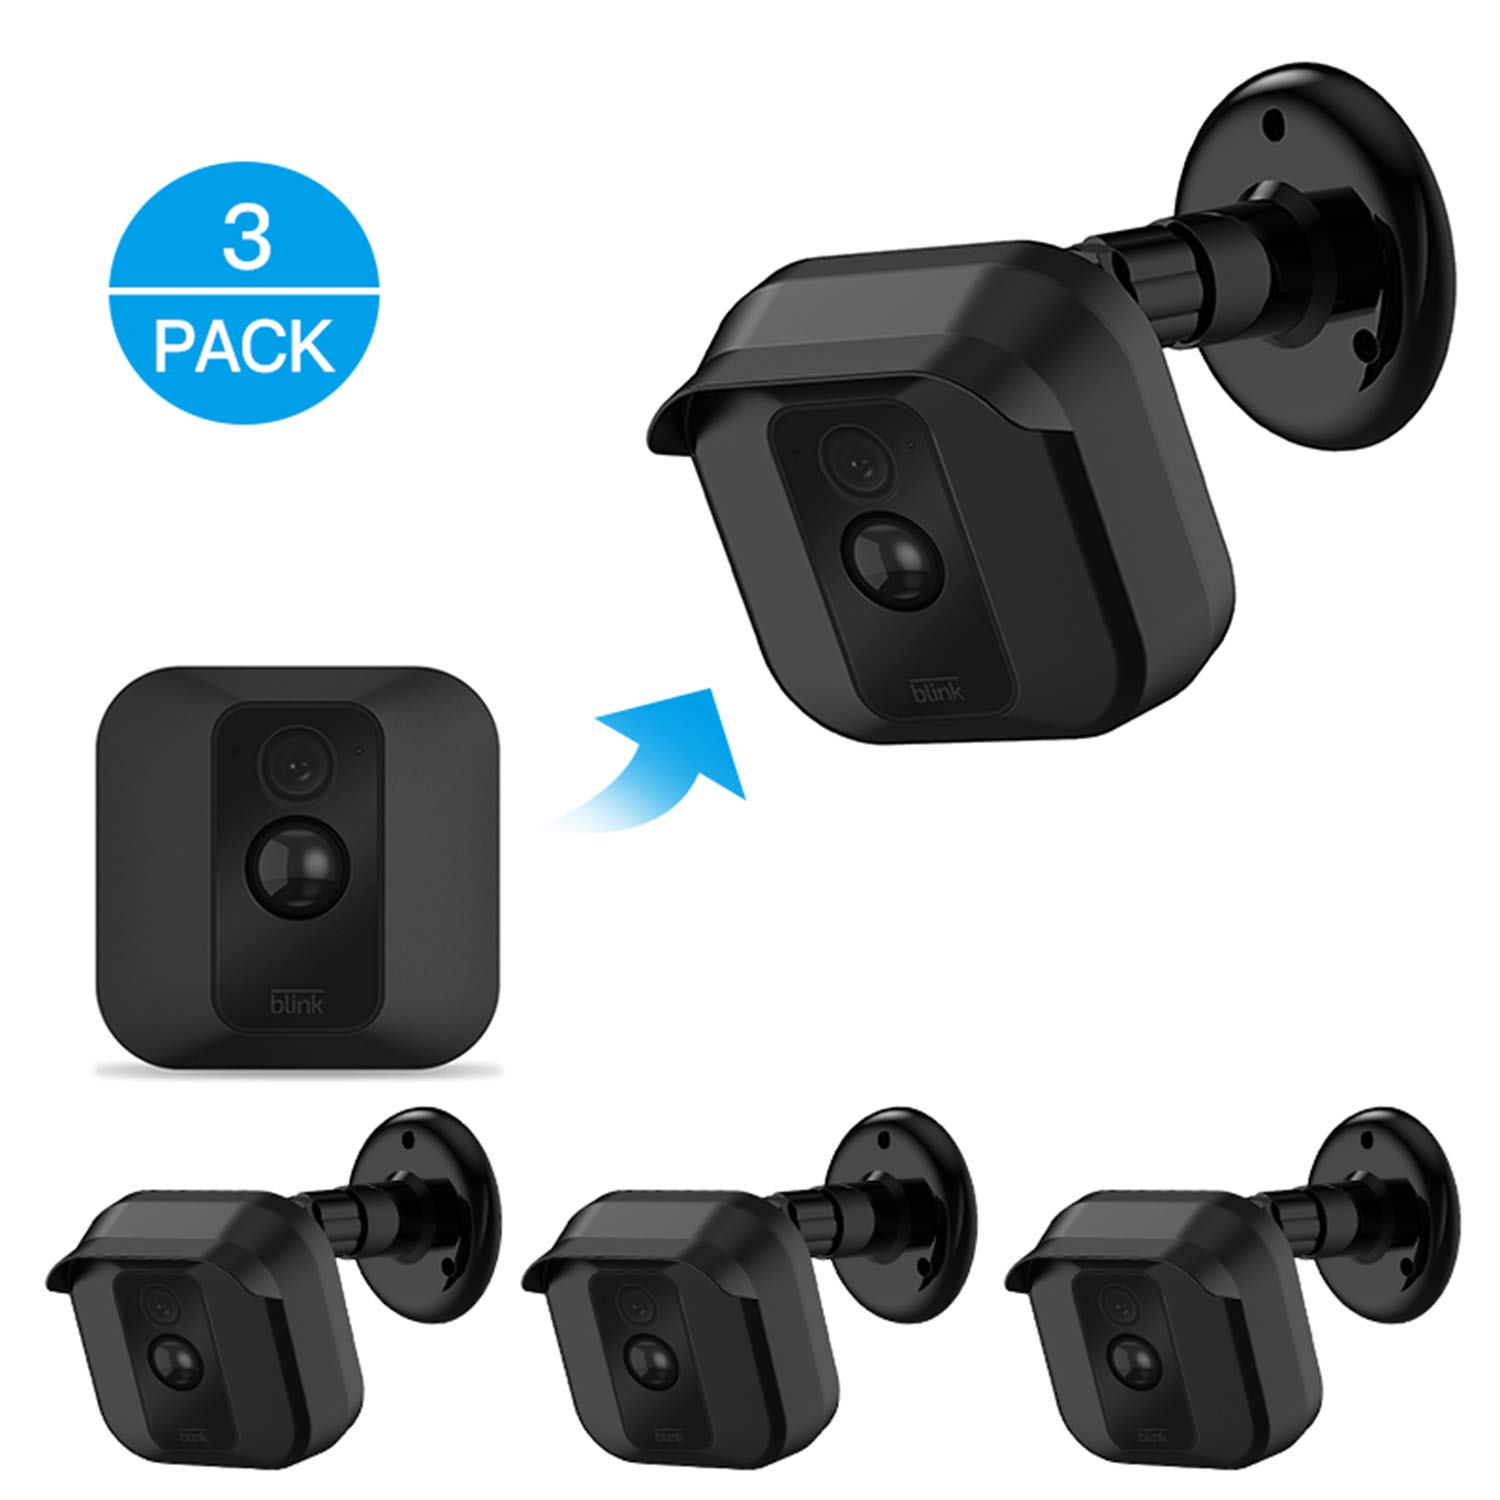 Blink XT XT2 Camera Wall Mount Bracket ,Weather Proof 360 Degree Protective  Adjustable Indoor/Outdoor Mount and Cover for Blink XT XT2 Home Security